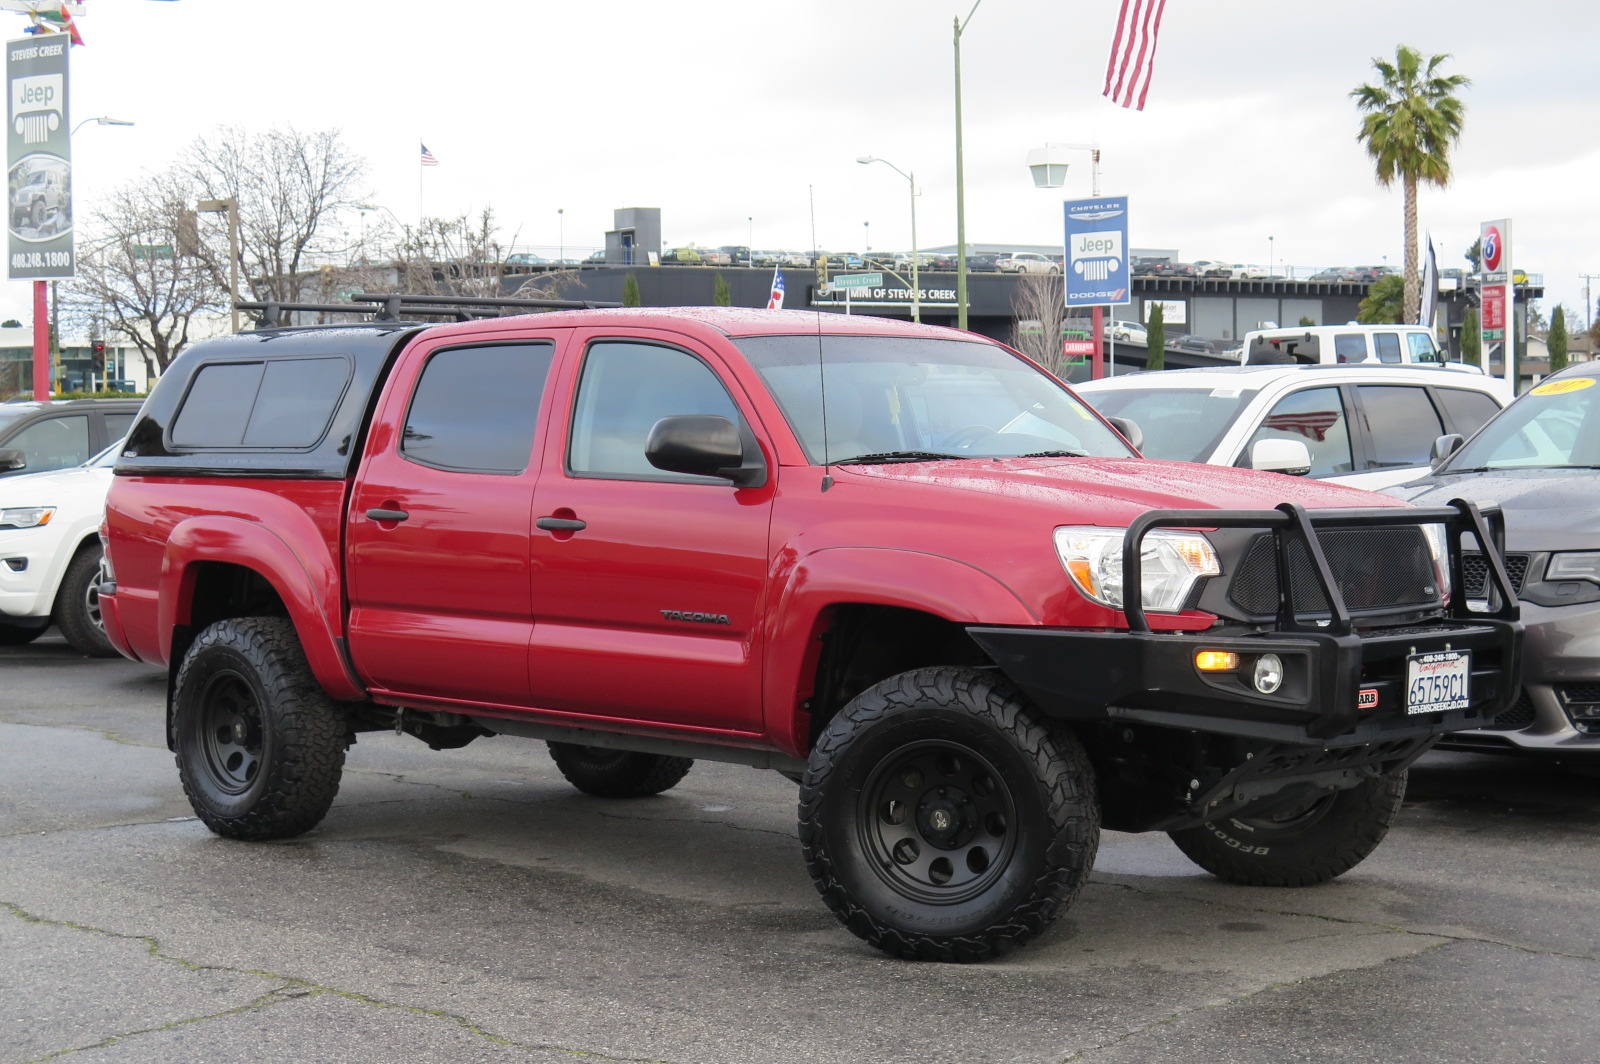 2013 toyota tacoma sr5 cars and vehicles san jose ca. Black Bedroom Furniture Sets. Home Design Ideas